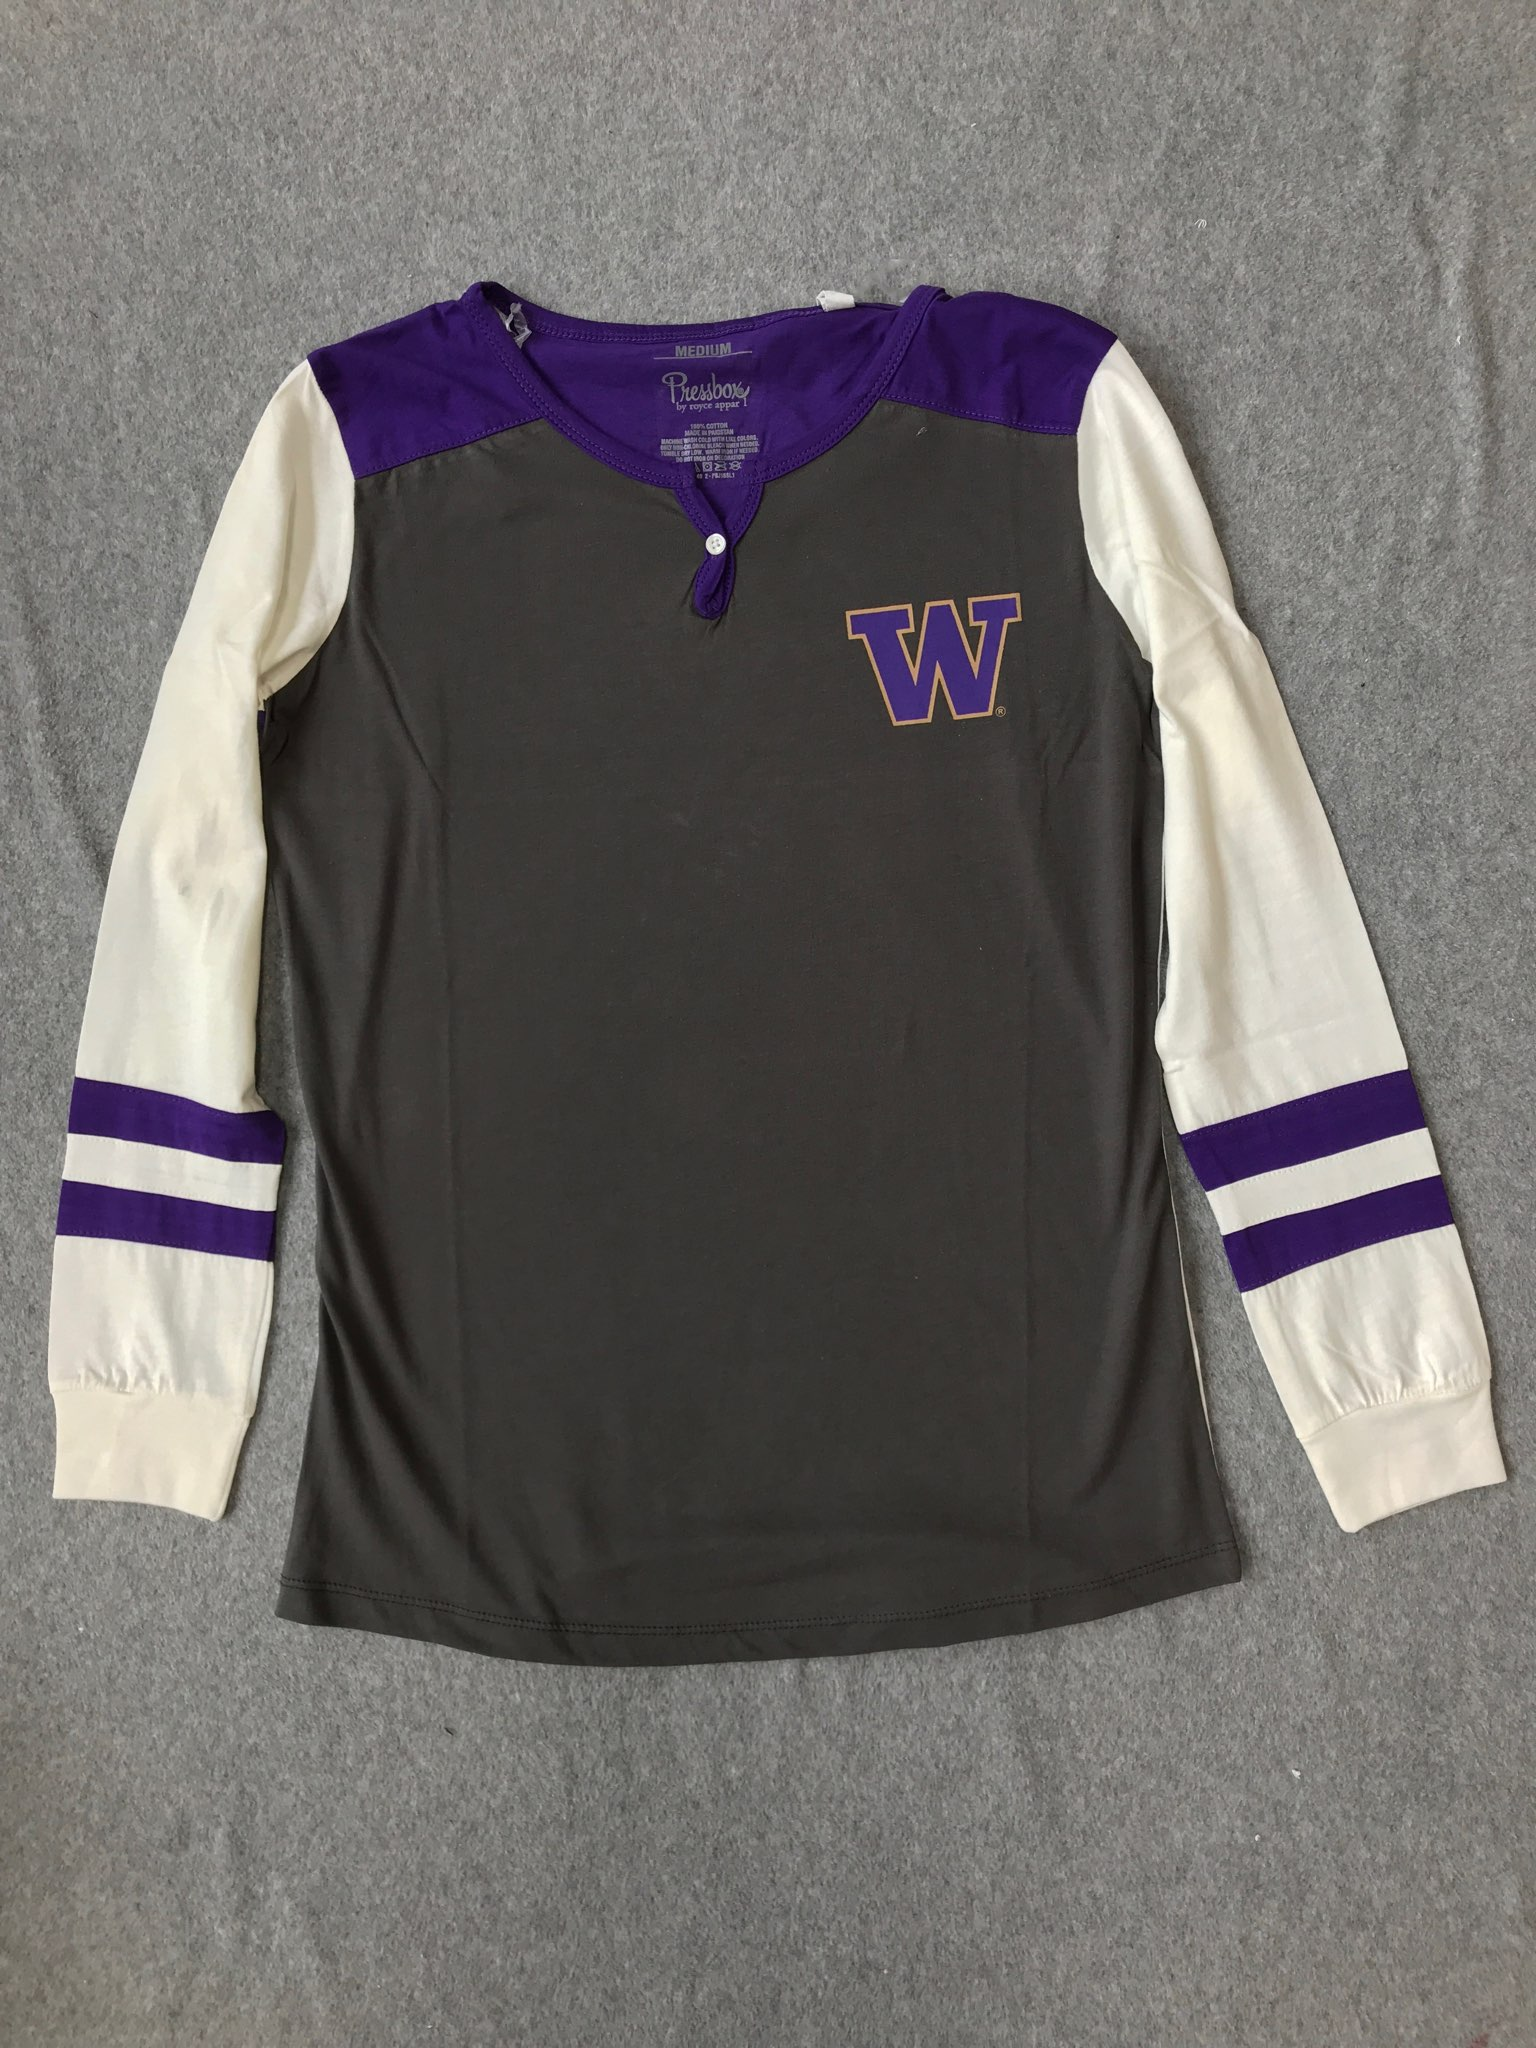 UW Ladies Baseball Tee longsleeve Size XL